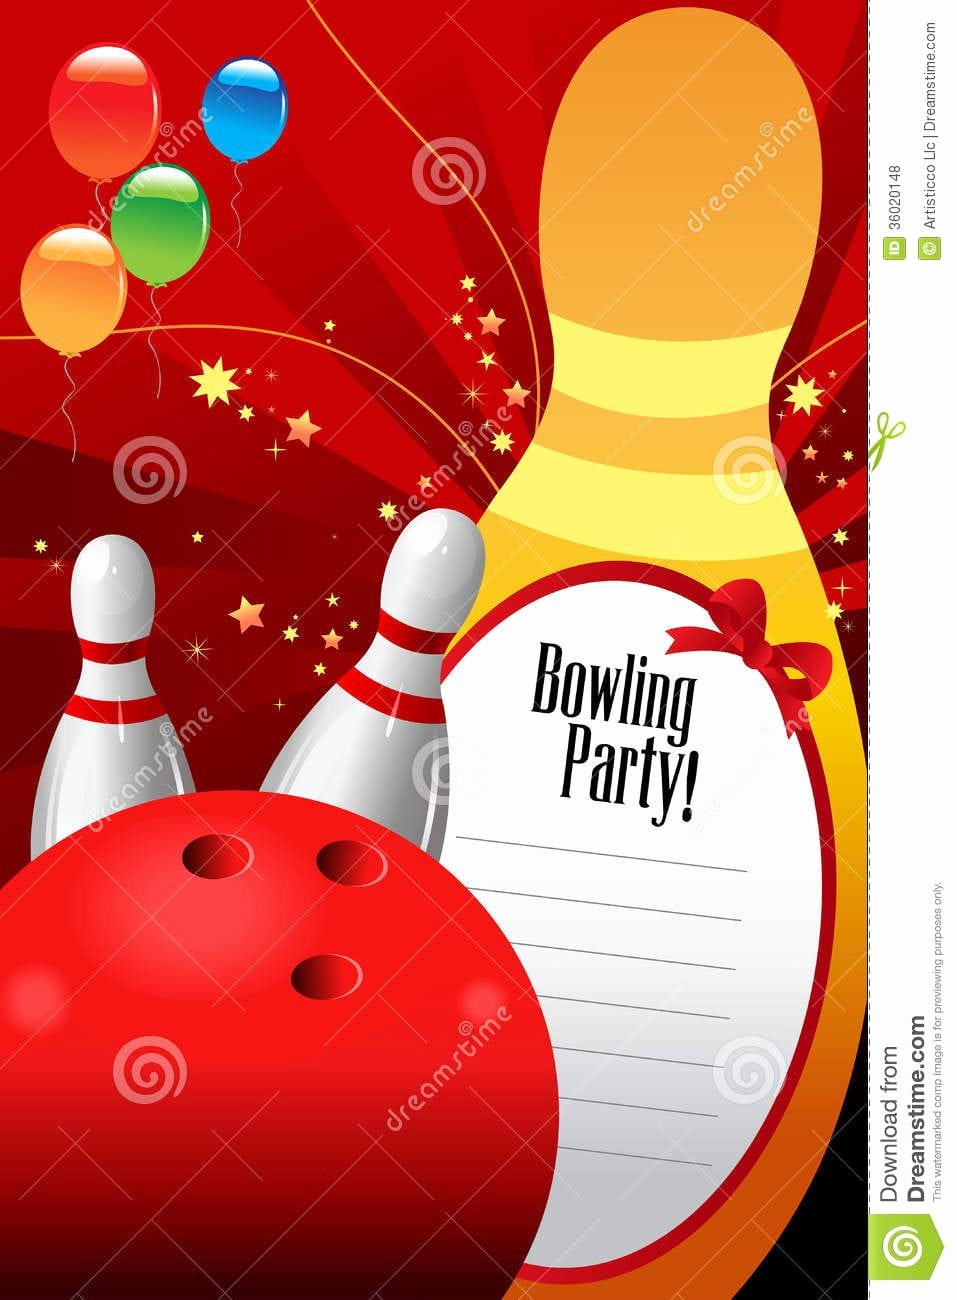 Bowling Party Invitation Template Awesome Free Bowling Invitation Template